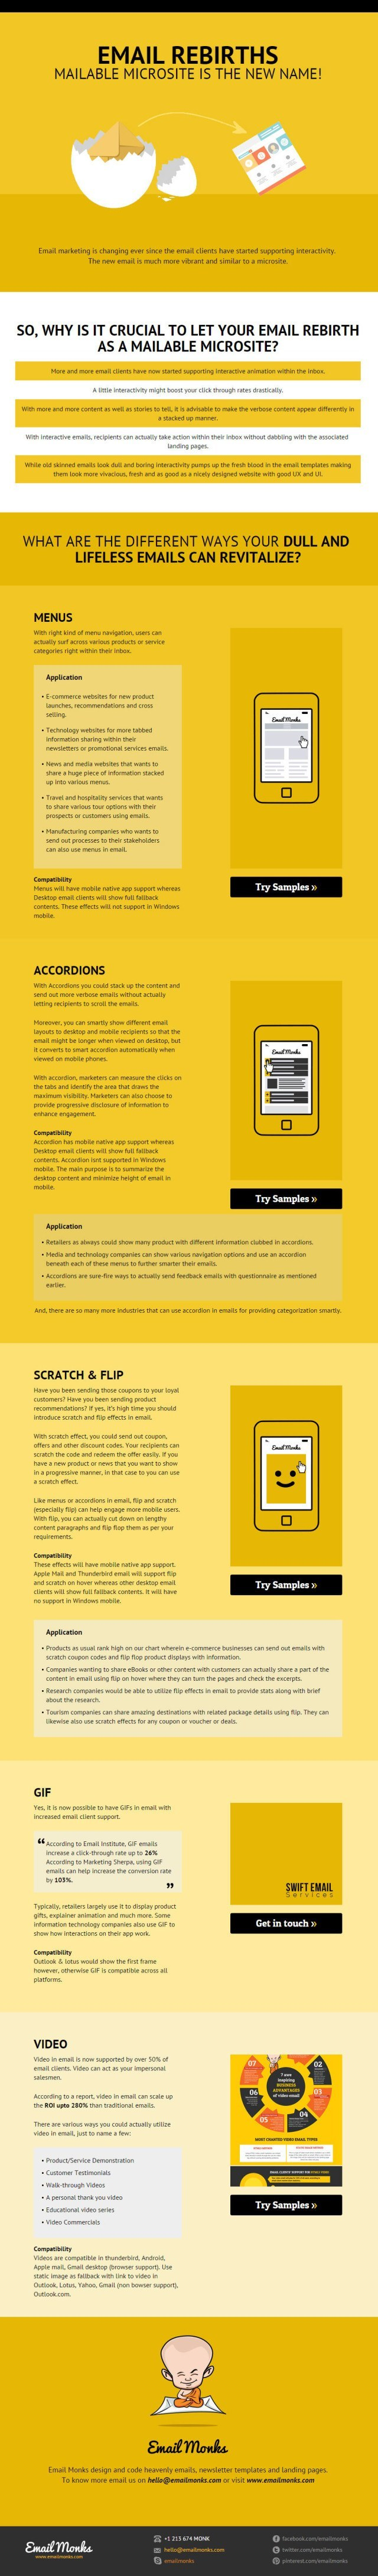 5 Interactive Email Design Elements That Increase Click Through Rates Marketing Technology Email Design Infographic Marketing Marketing Technology